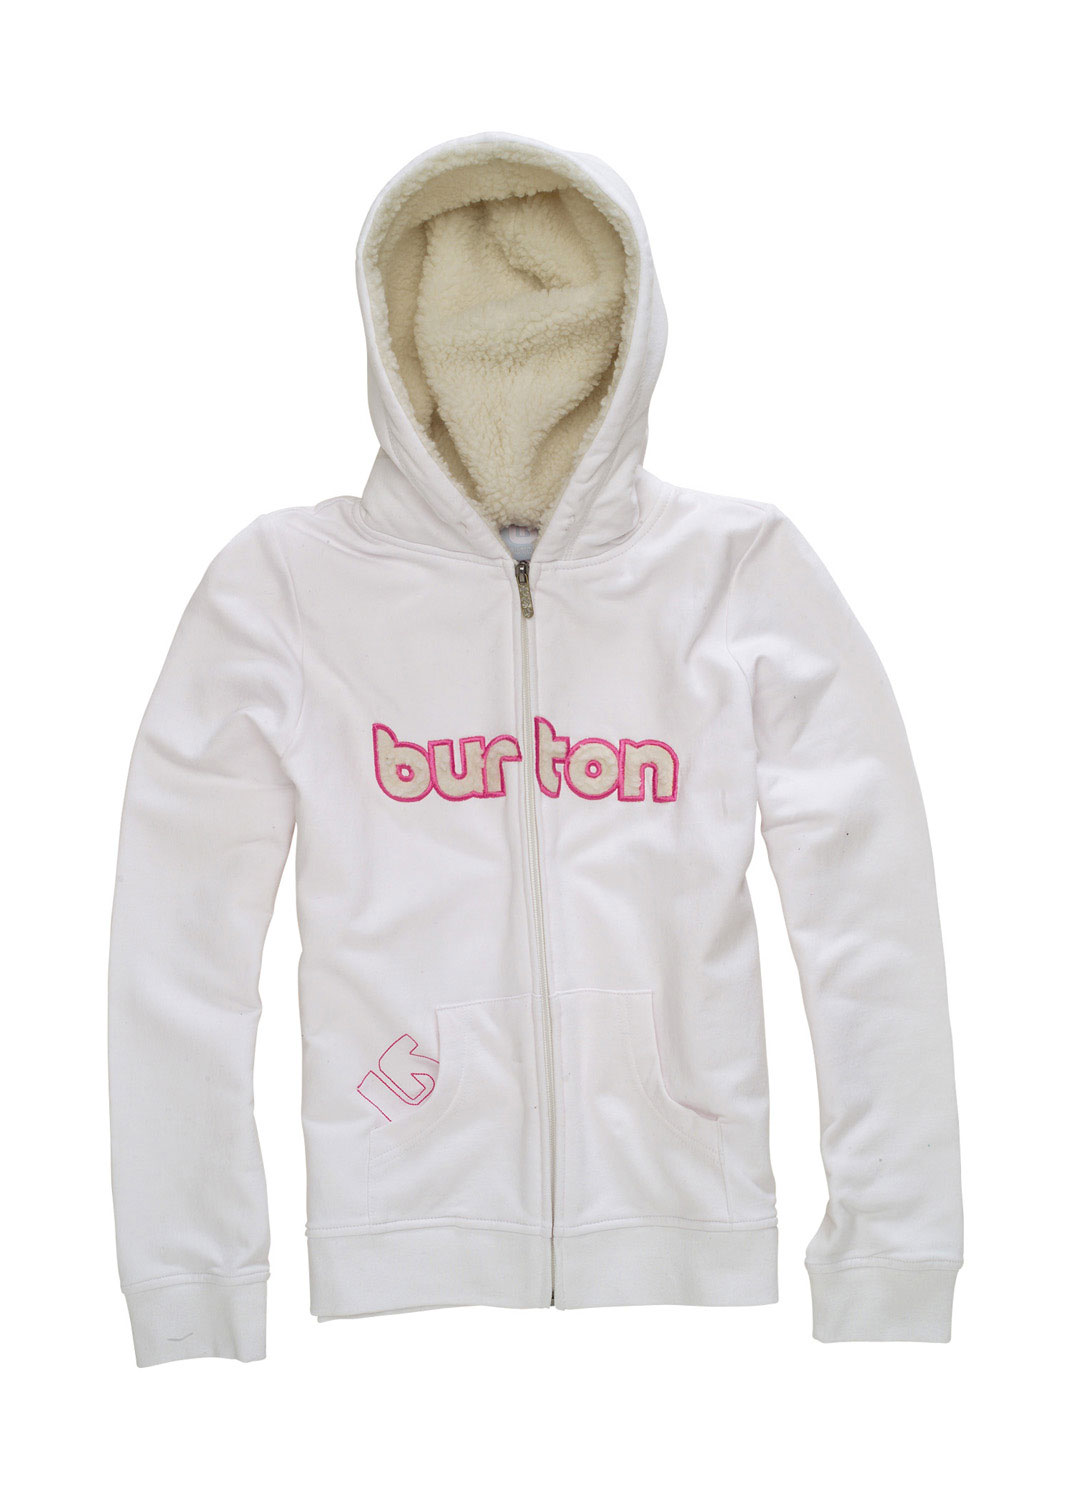 Snowboard The Burton Shred Girls Hoodie is a great layering piece! It comes in comfortable 100% cotton twill fleece in a design that won't go out of style soon!Key Features of the Burton Shred Hoodie Bright White: 100% Cotton Twill Fleece - $28.95